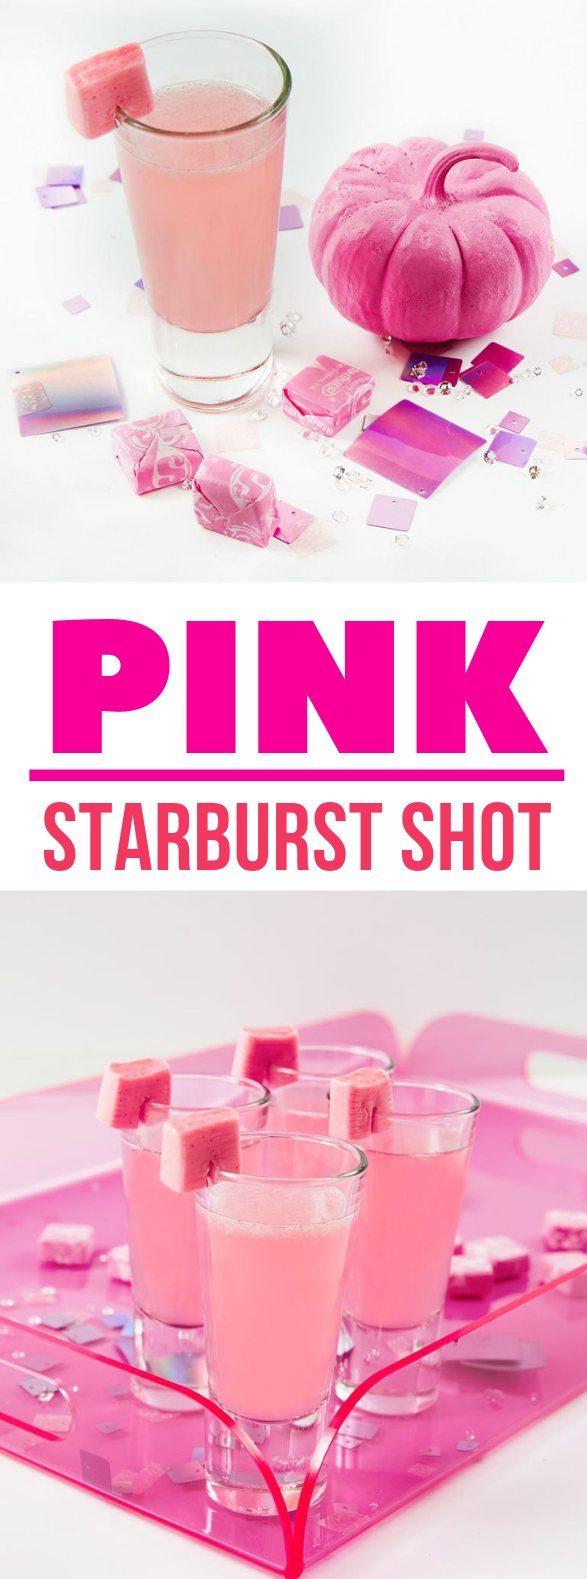 You Must Make This Pink Starburst Shot for Halloween Pregaming #drinks #partydrink